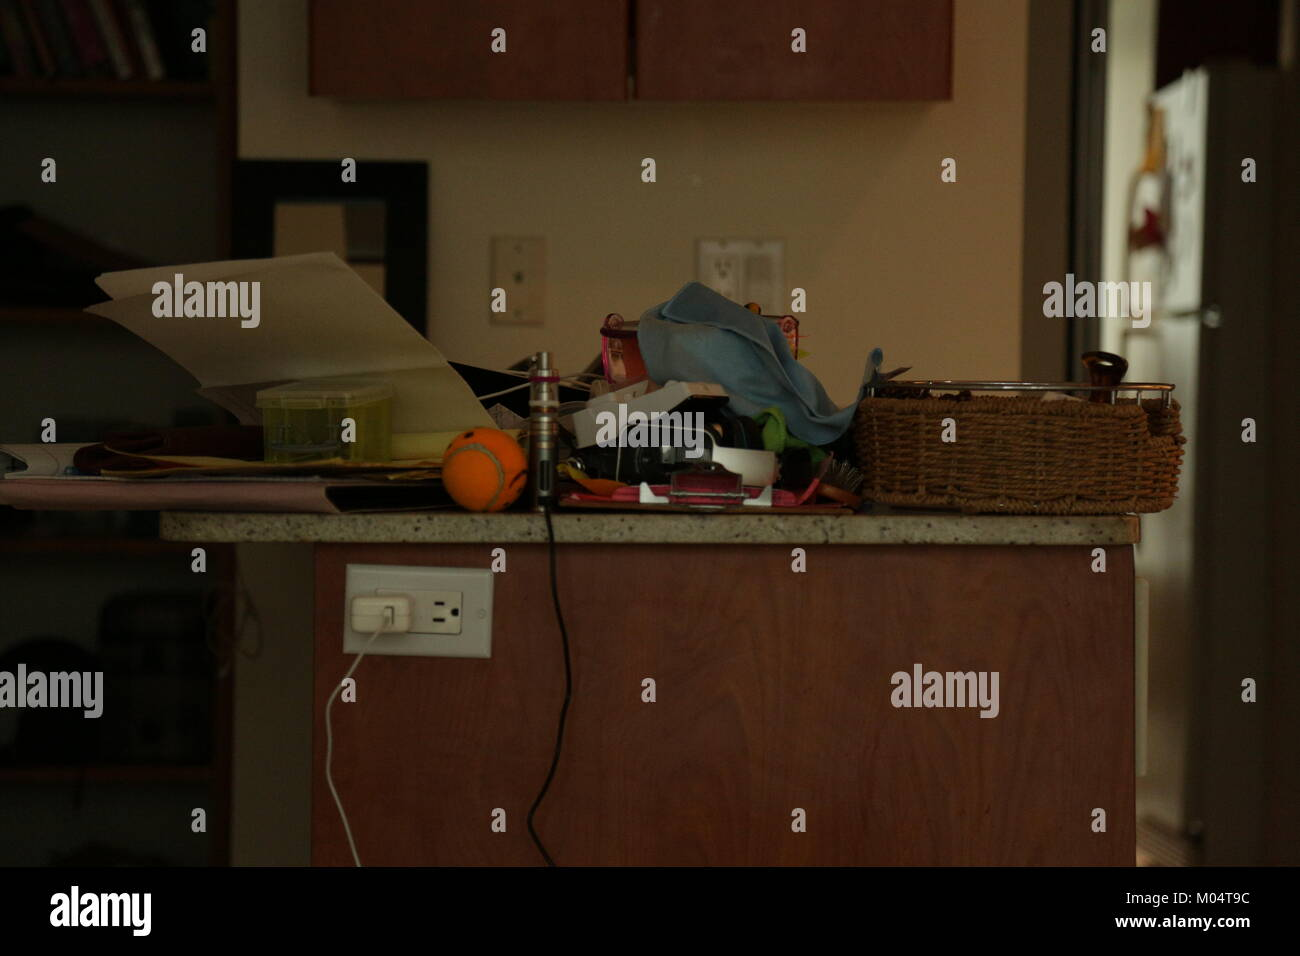 Messy house kitchen counter - Stock Image